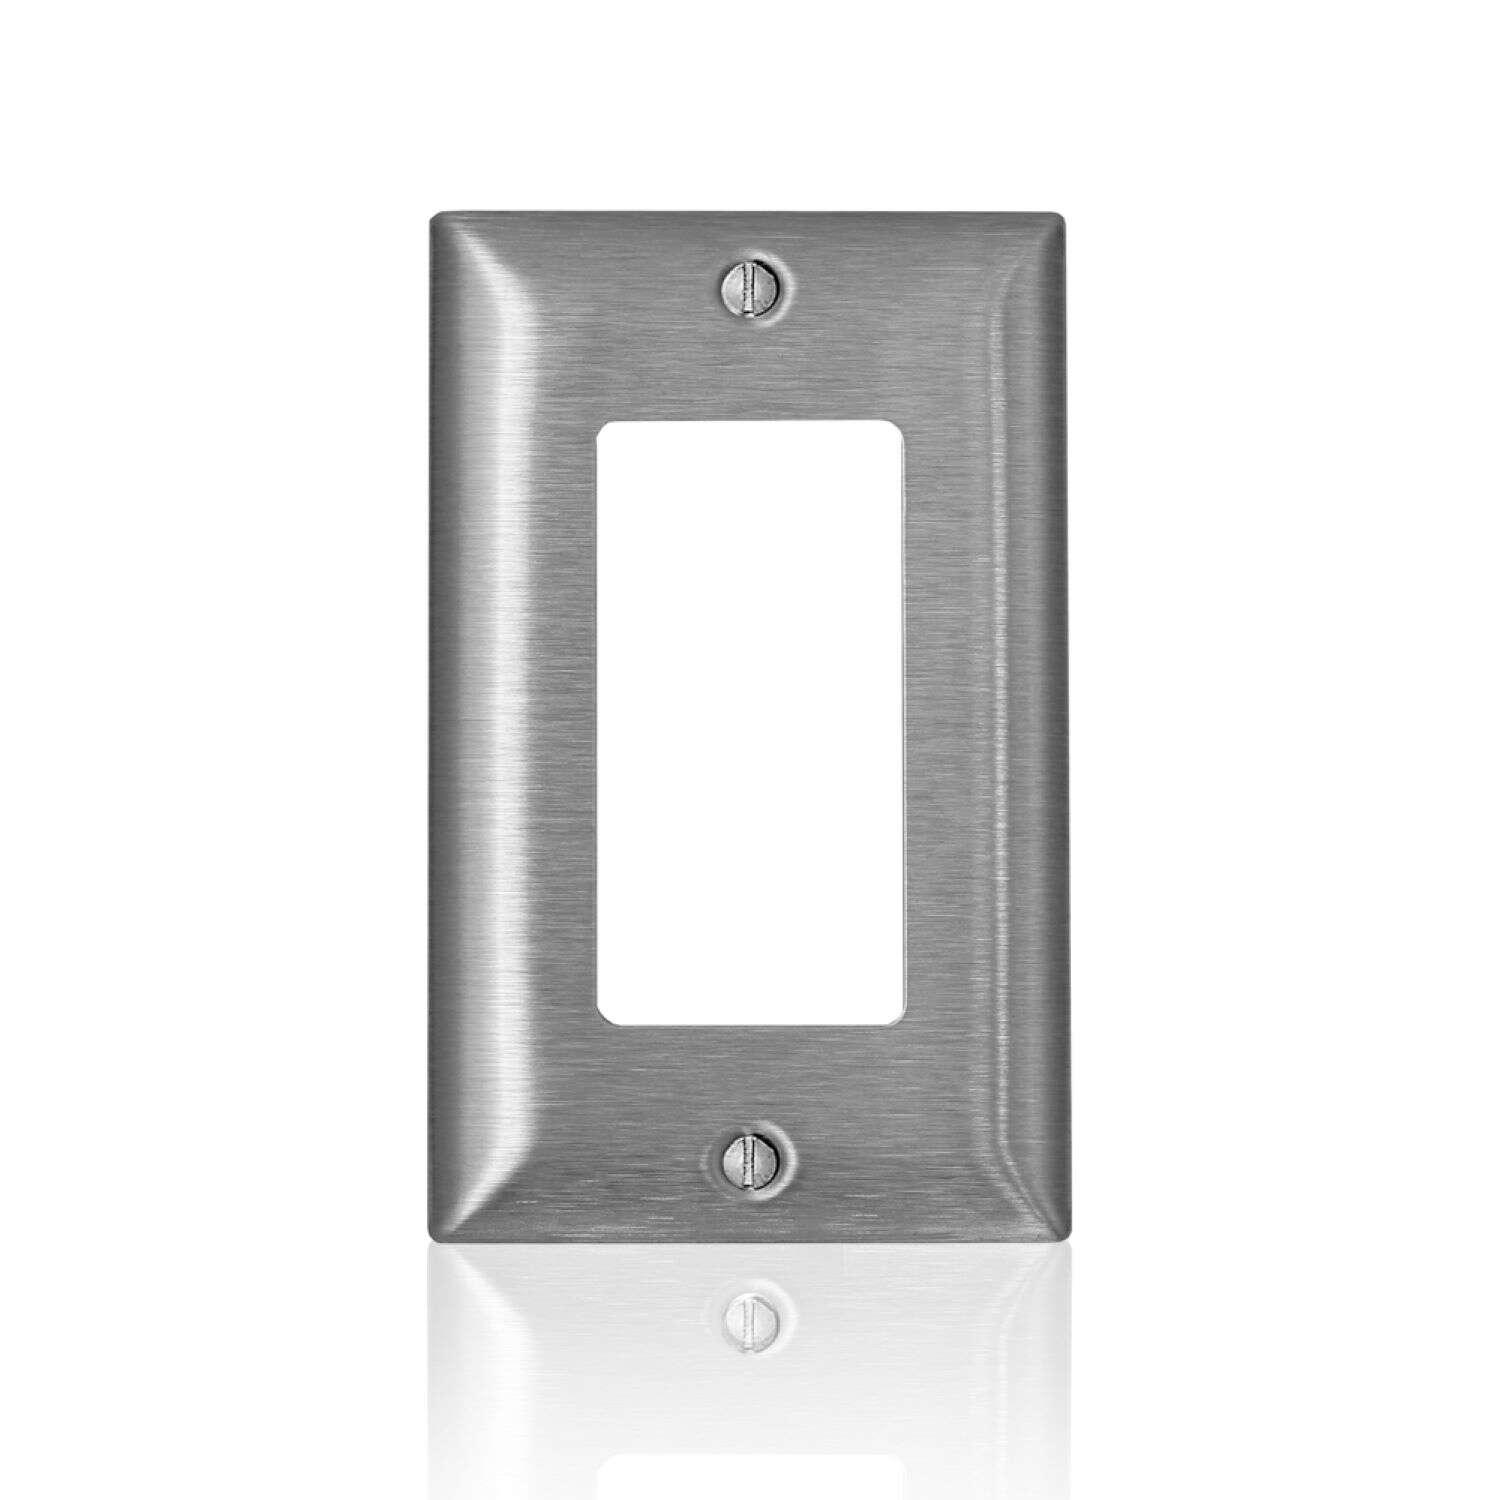 Leviton  C-Series  Stainless Steel  1 gang Metal  Decora/GFCI  Wall Plate  1 pk